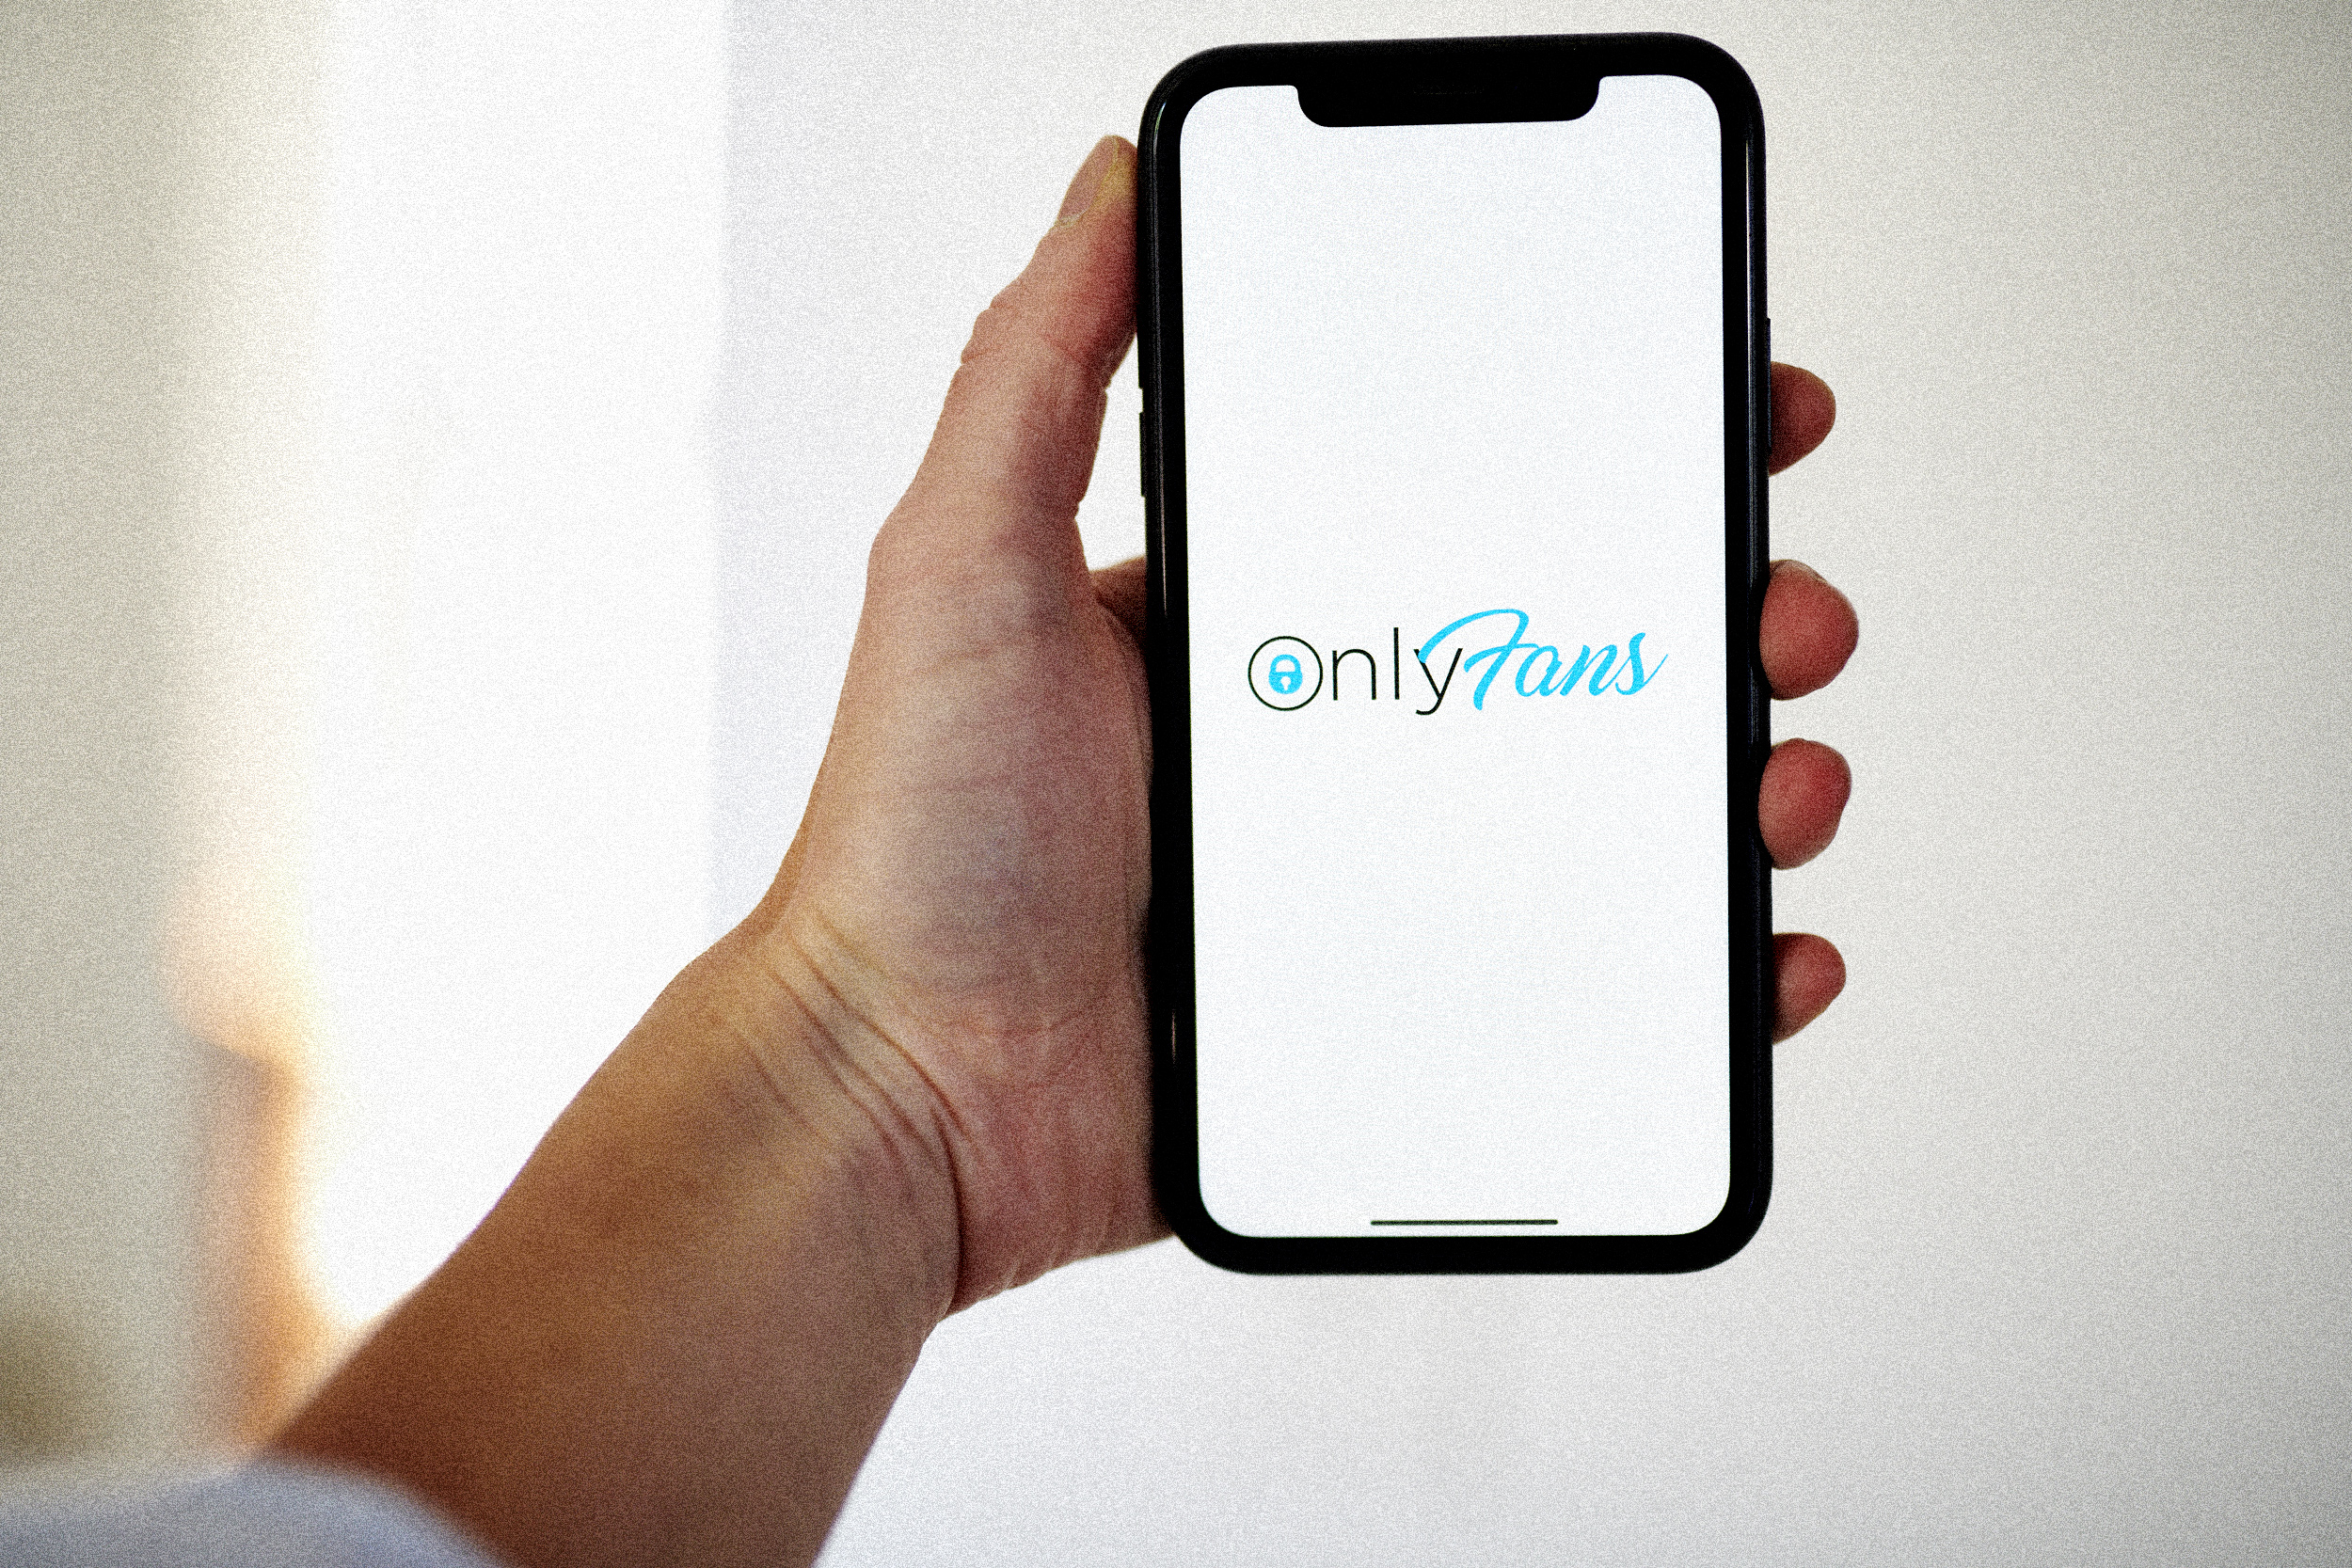 OnlyFans reverses decision to ban sexually explicit content after backlash